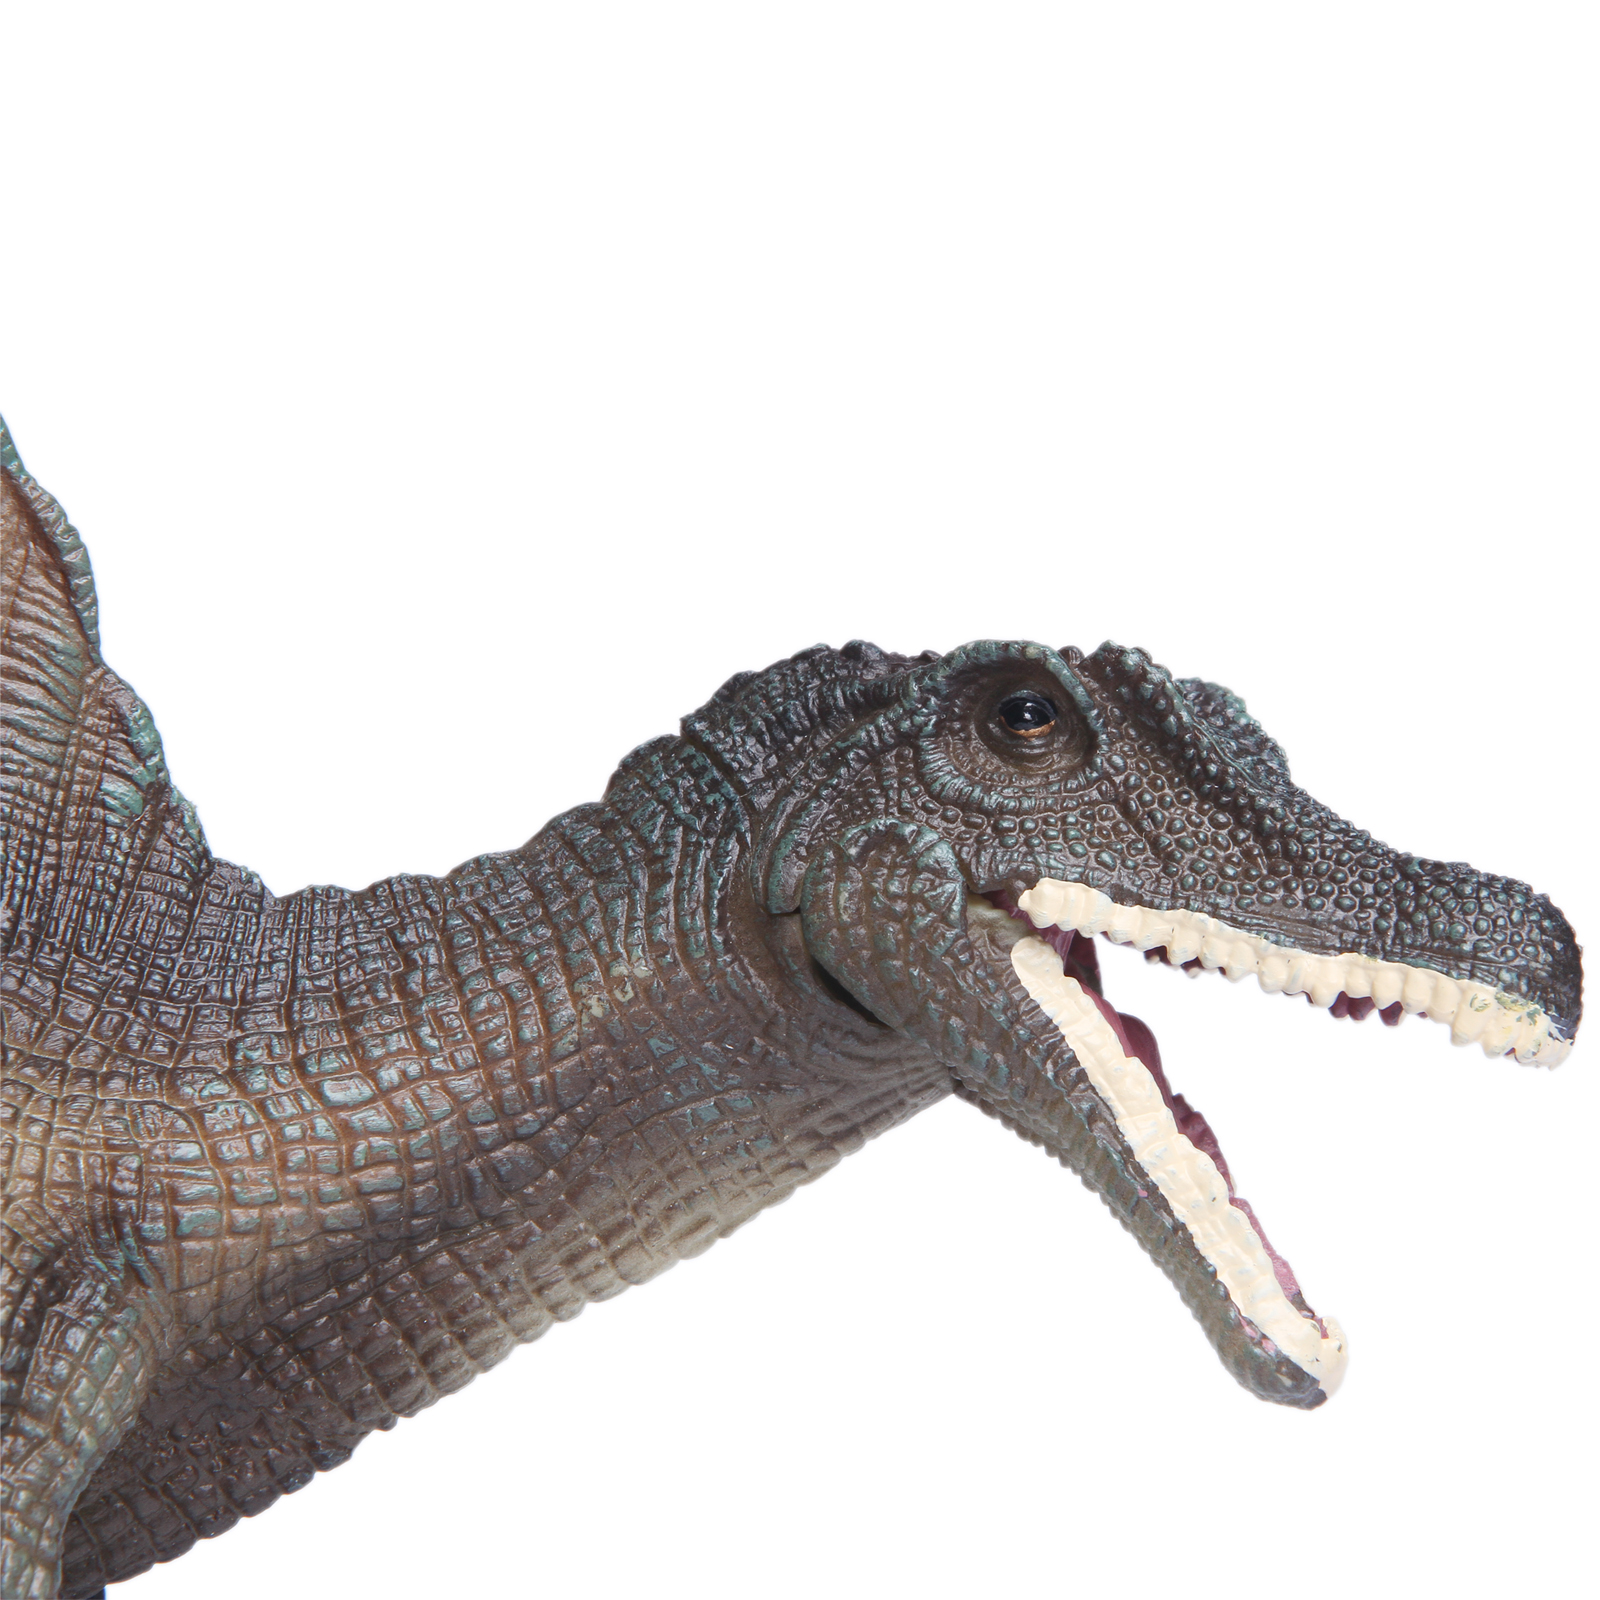 Jurassic World Park Dinosaur Spinosaurus Model Action ...